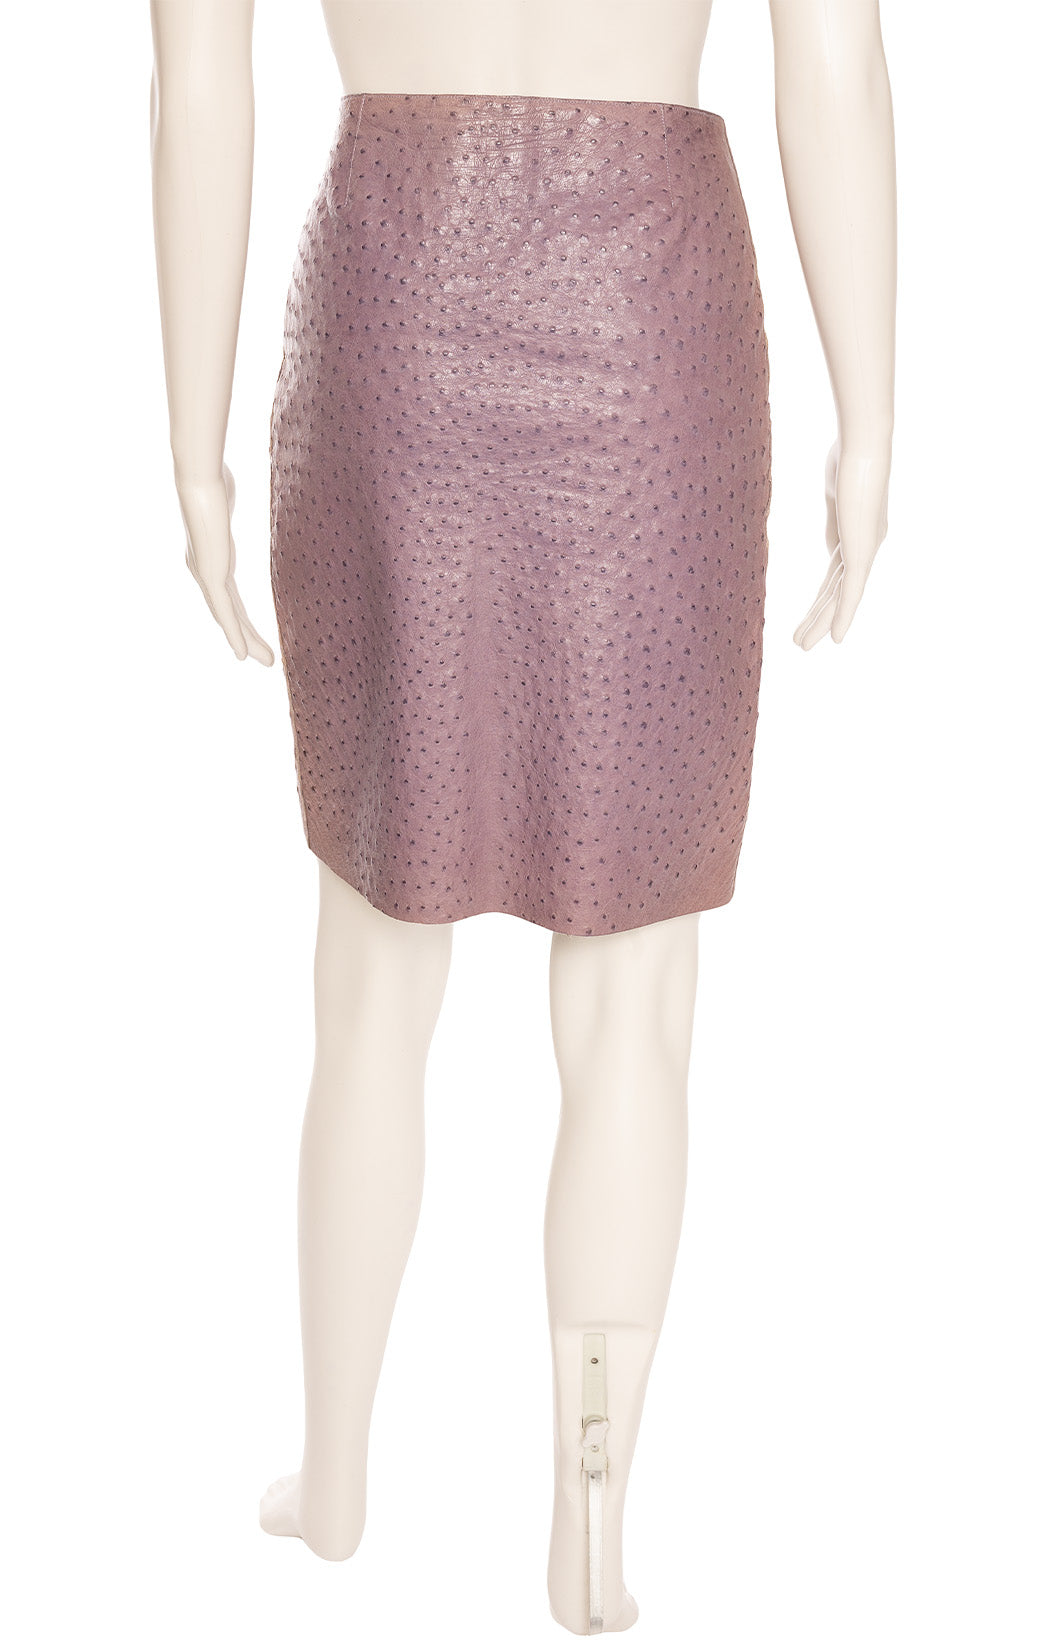 Lavender ostrich skirt with side zipper